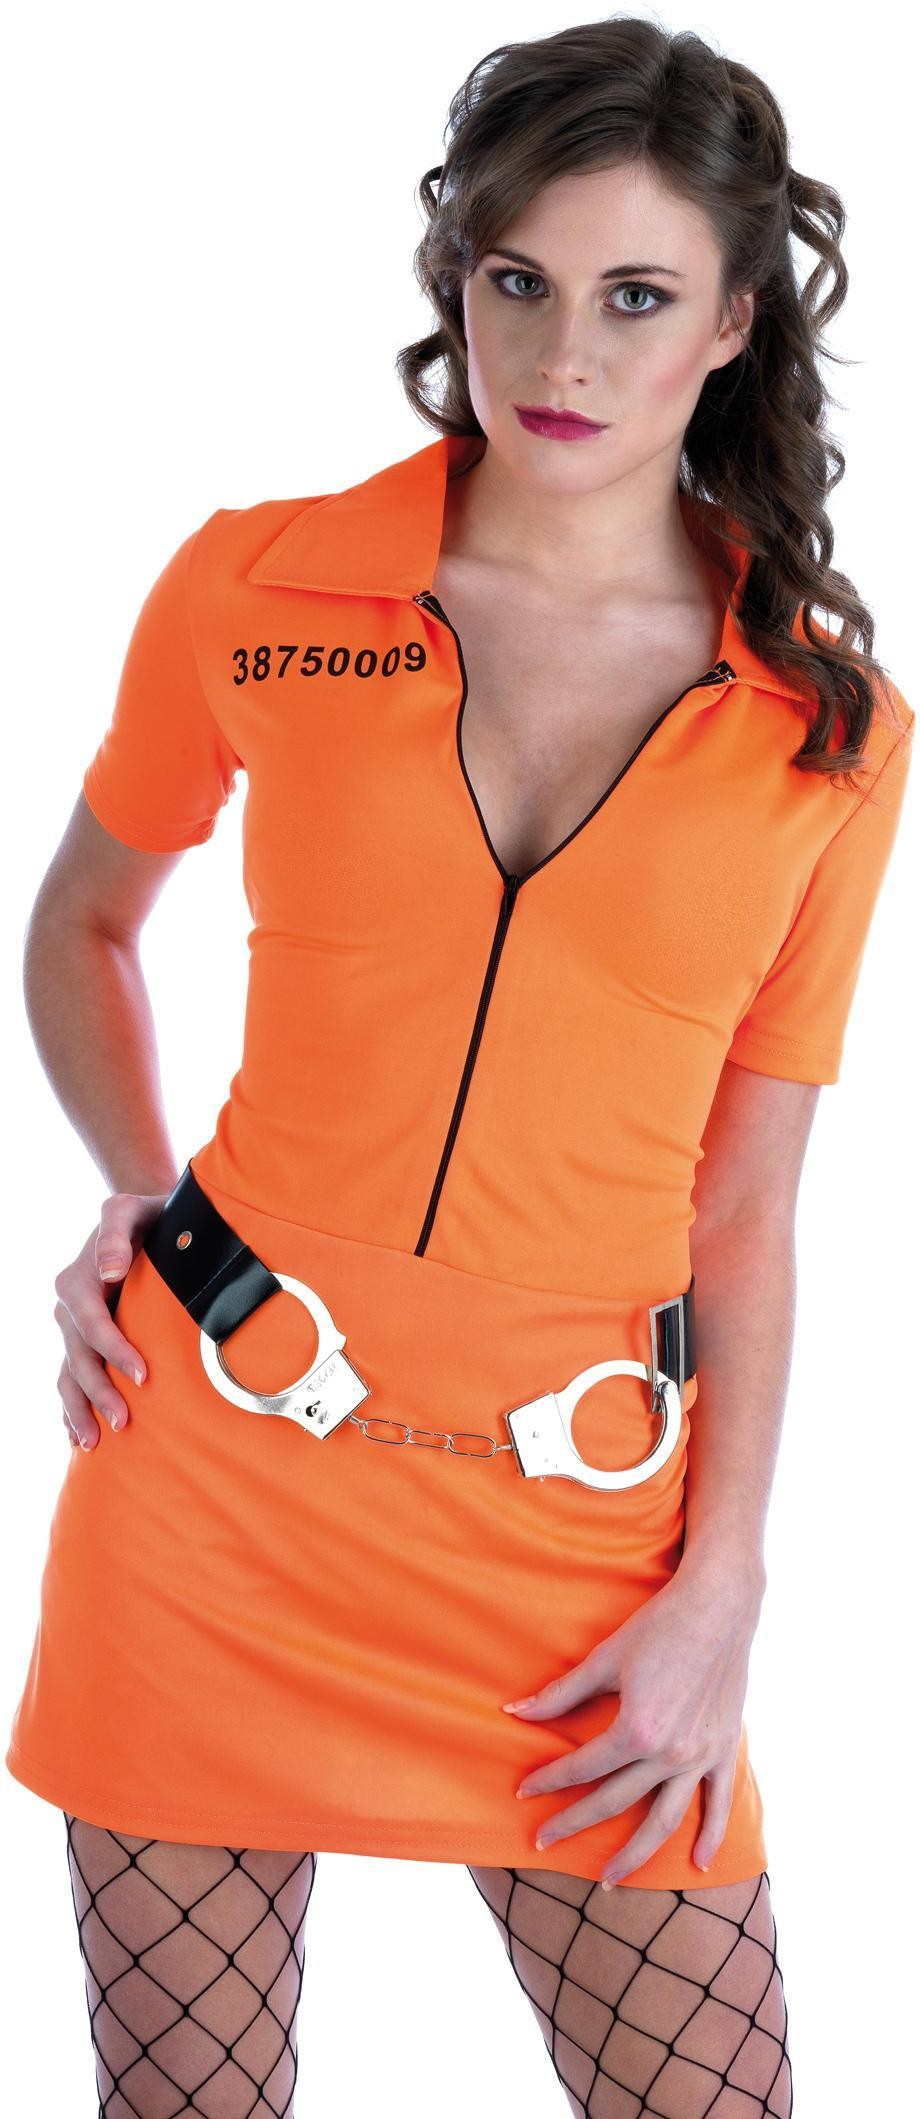 Prisoner Girl Costume